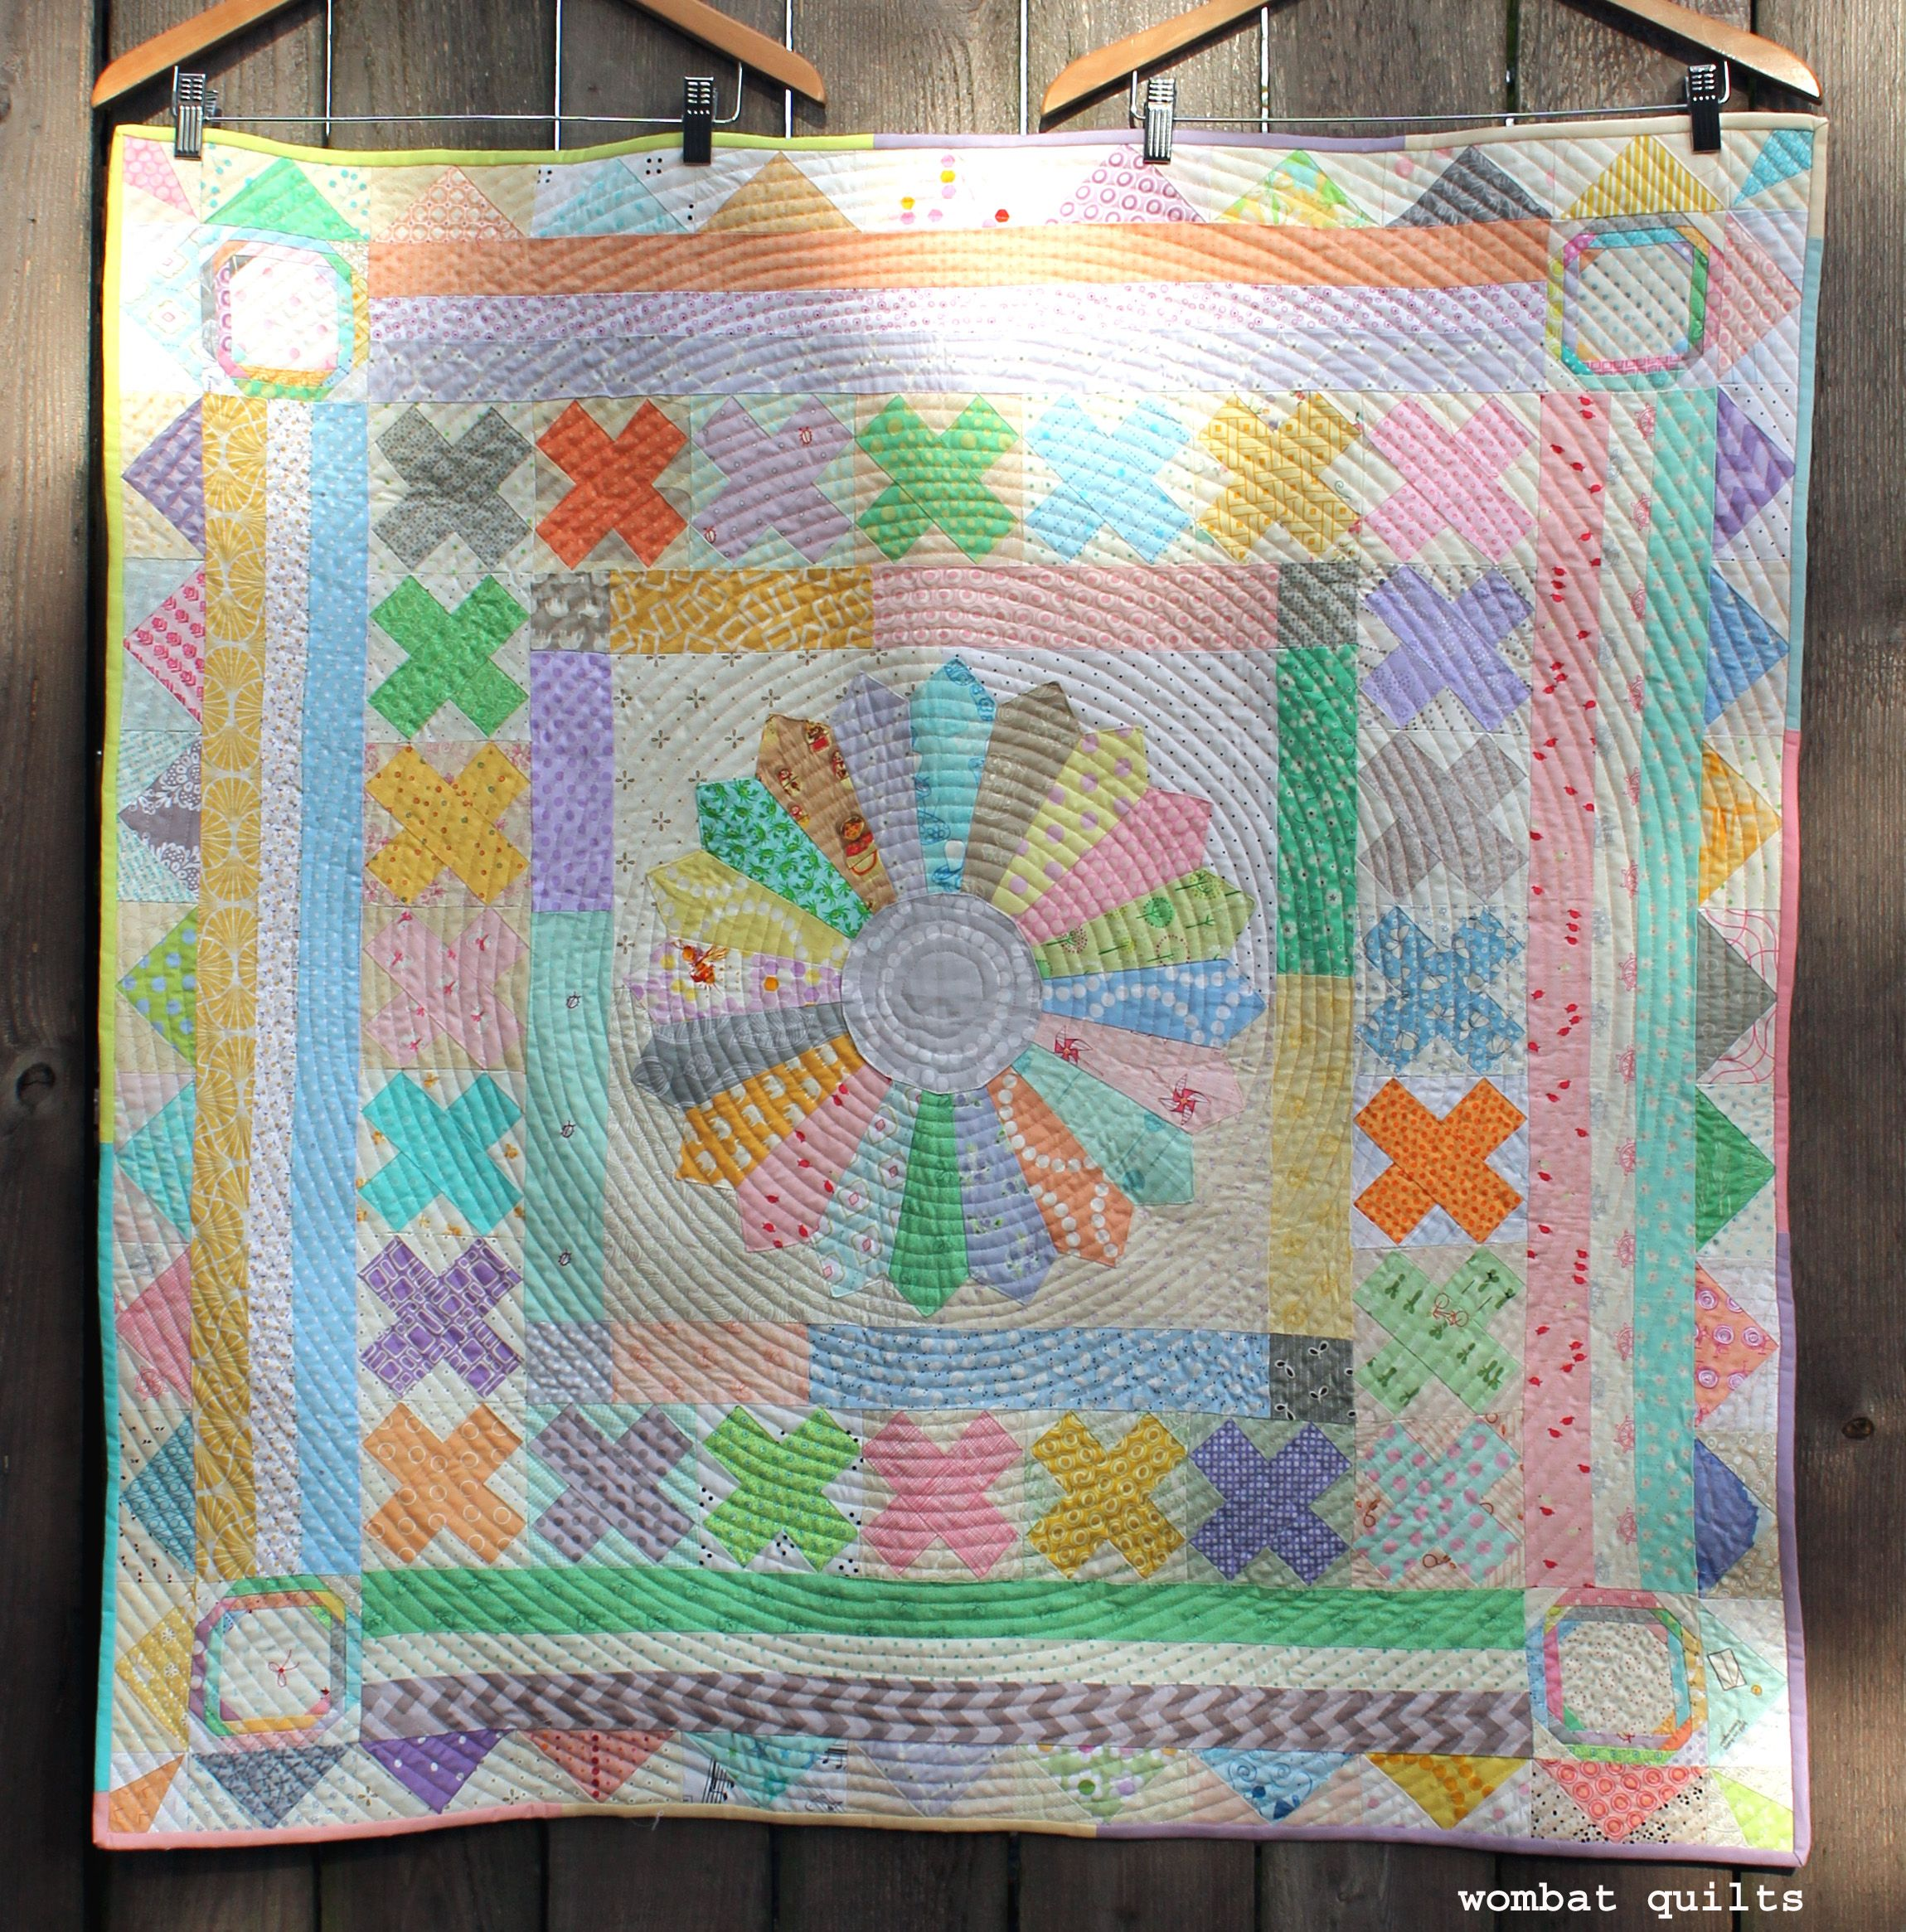 what halo thequiltshow center blocks medallion favorite bom is sue a star one learn variation this it feathered of quilt com s incorporates block the month calls